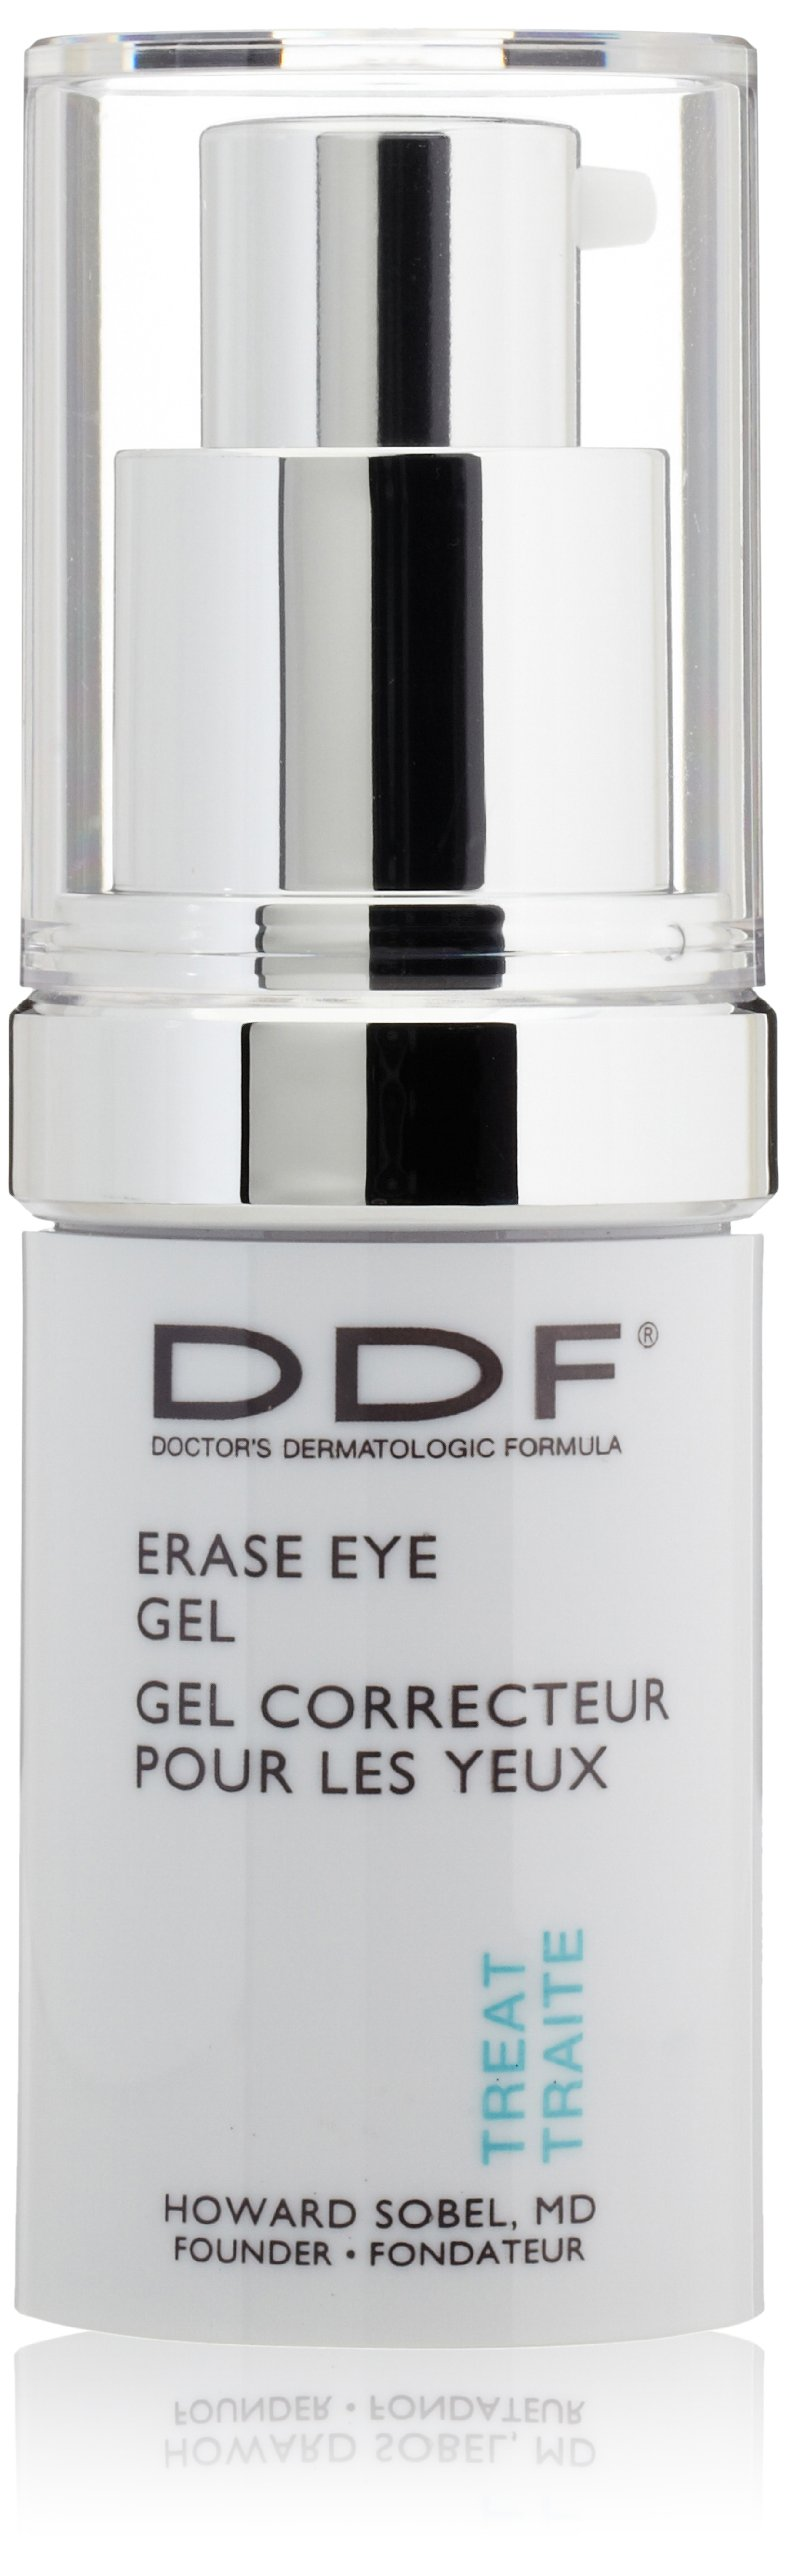 DDF Erase Eye Gel, 0.5 Oz